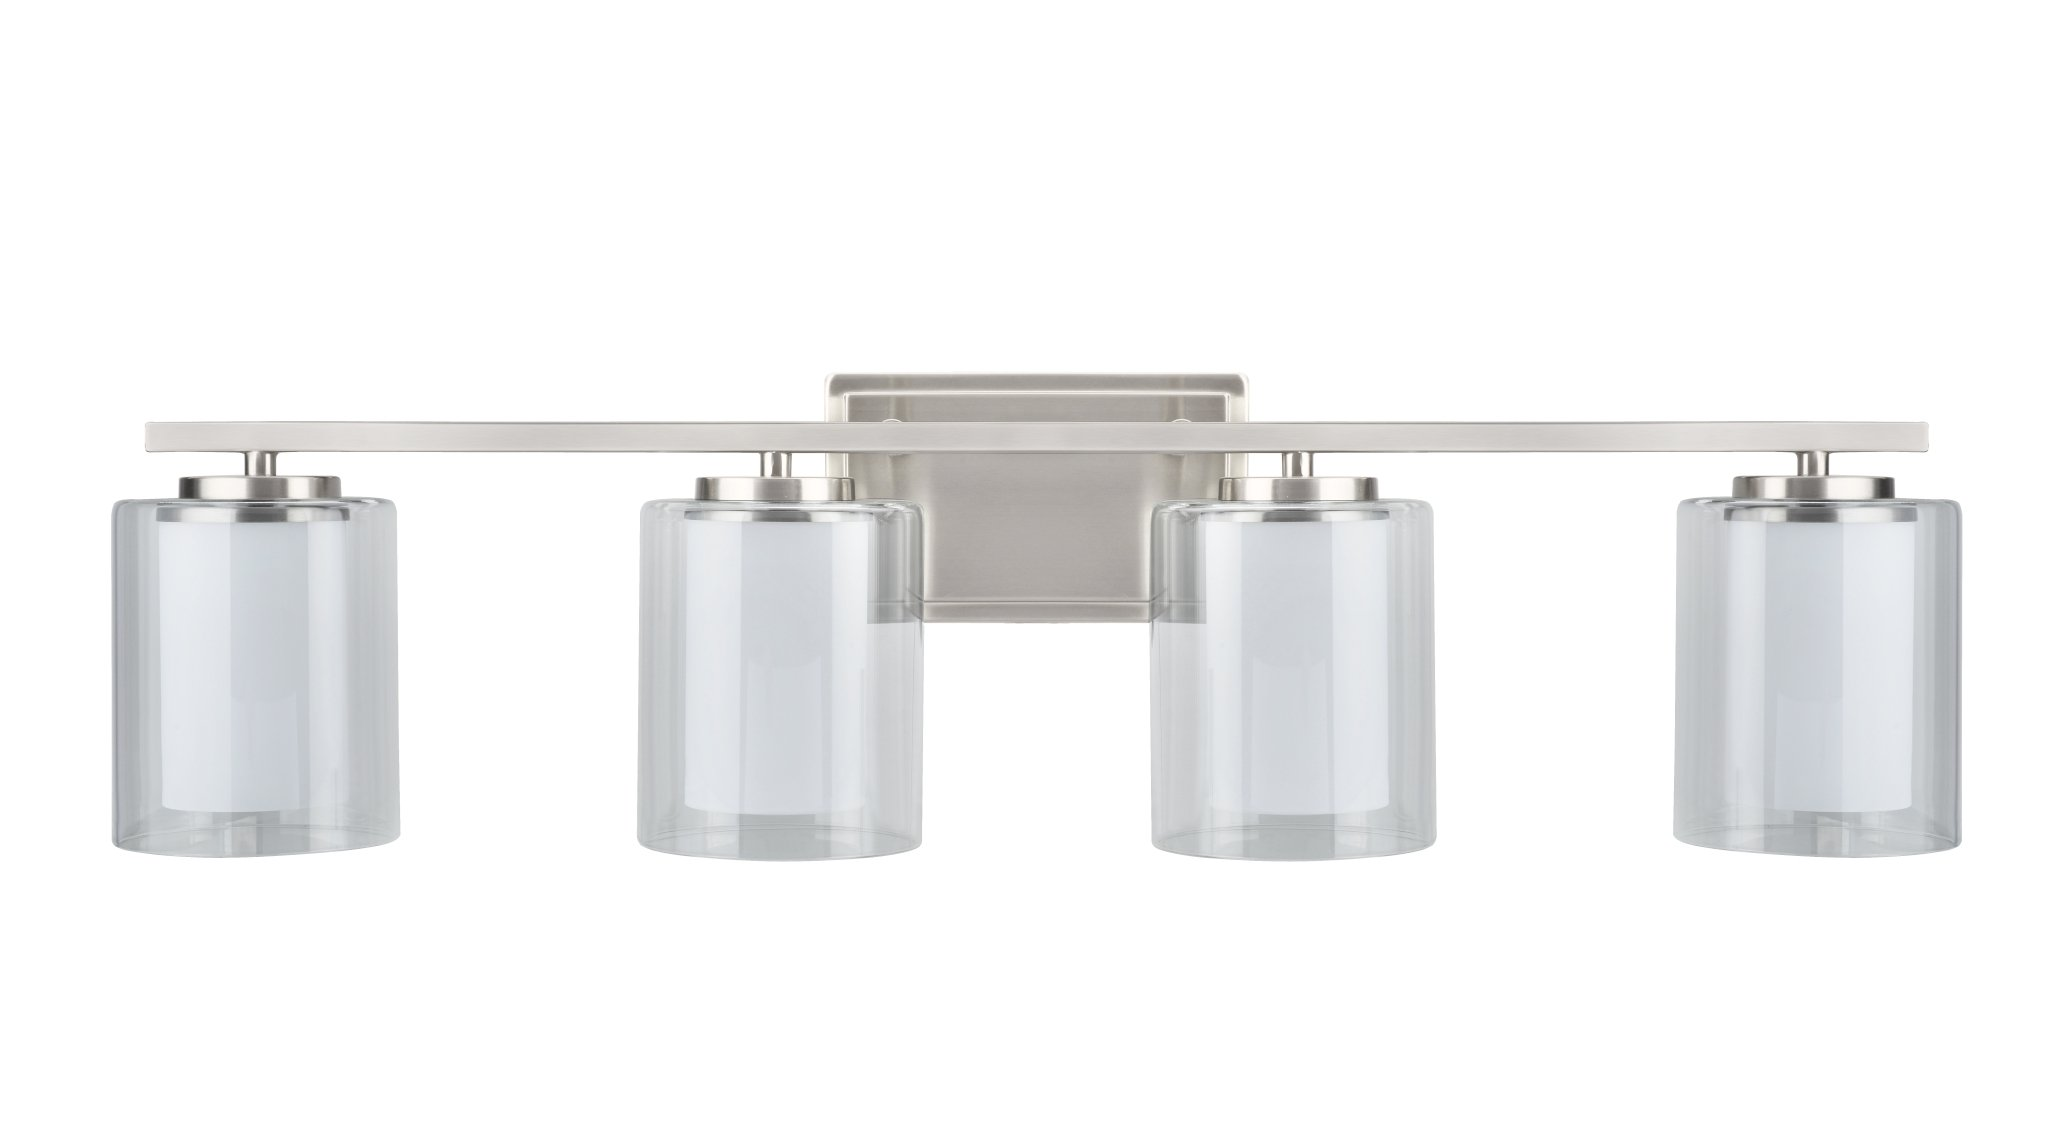 Aspen Creative 62104, Four-Light Metal Bathroom Vanity Wall Light Fixture, 32'' Wide, Transitional Design in Satin Nickel with Clear Glass Shade